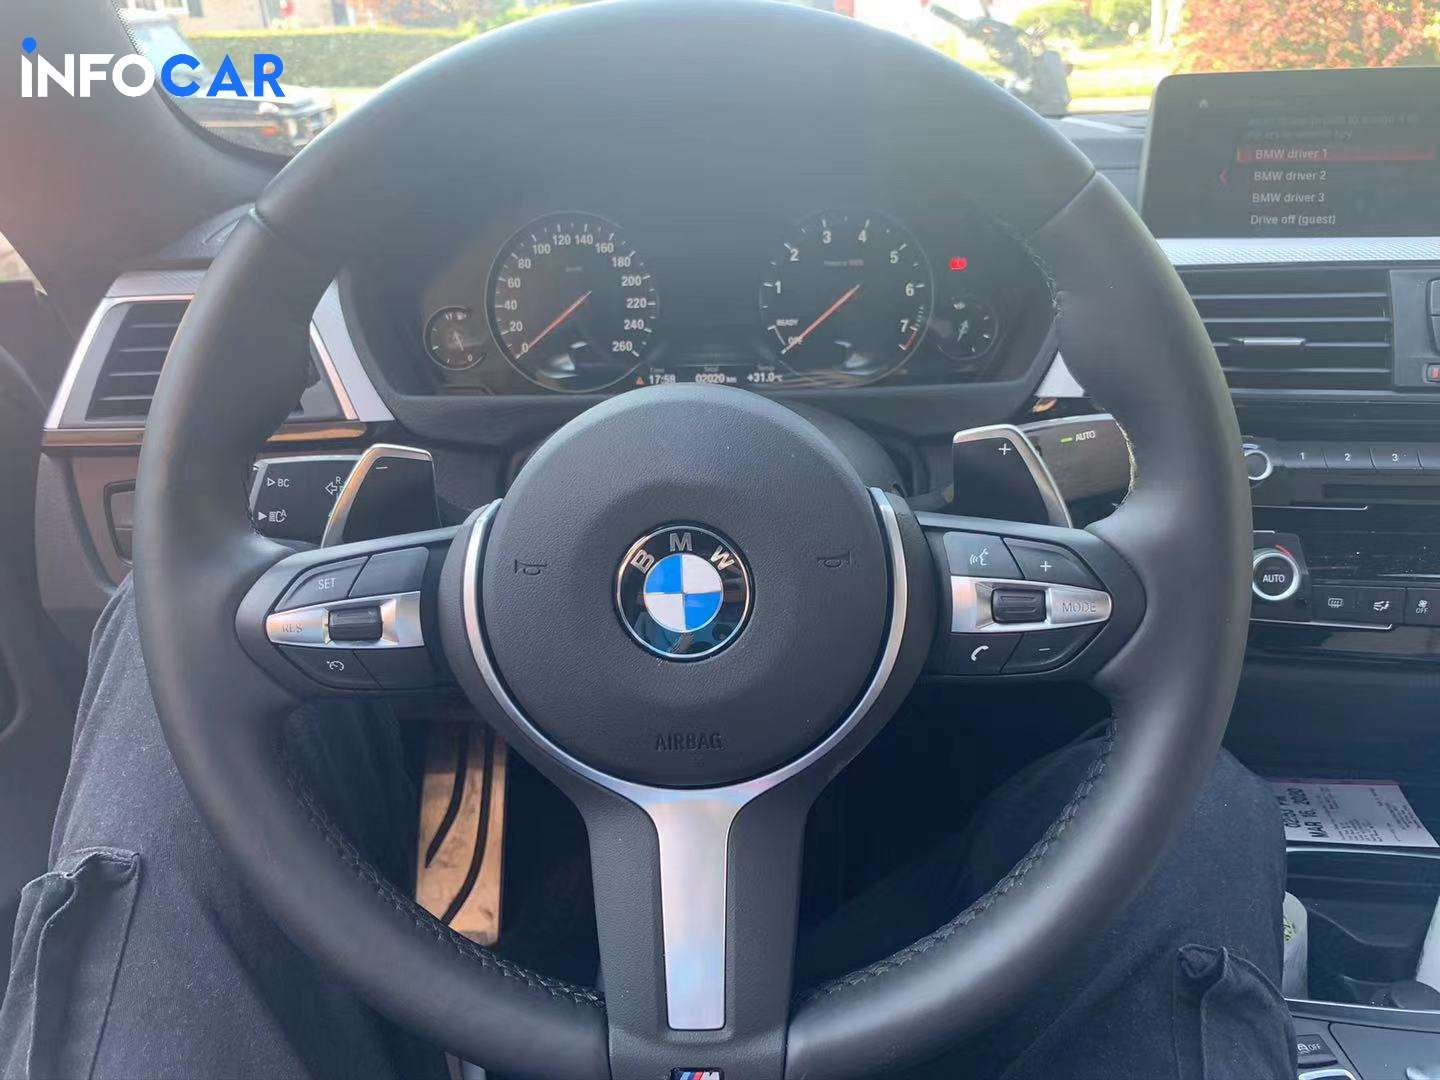 2019 BMW 4-Series Gran Coupe 440 enhanced+m sport - INFOCAR - Toronto's Most Comprehensive New and Used Auto Trading Platform